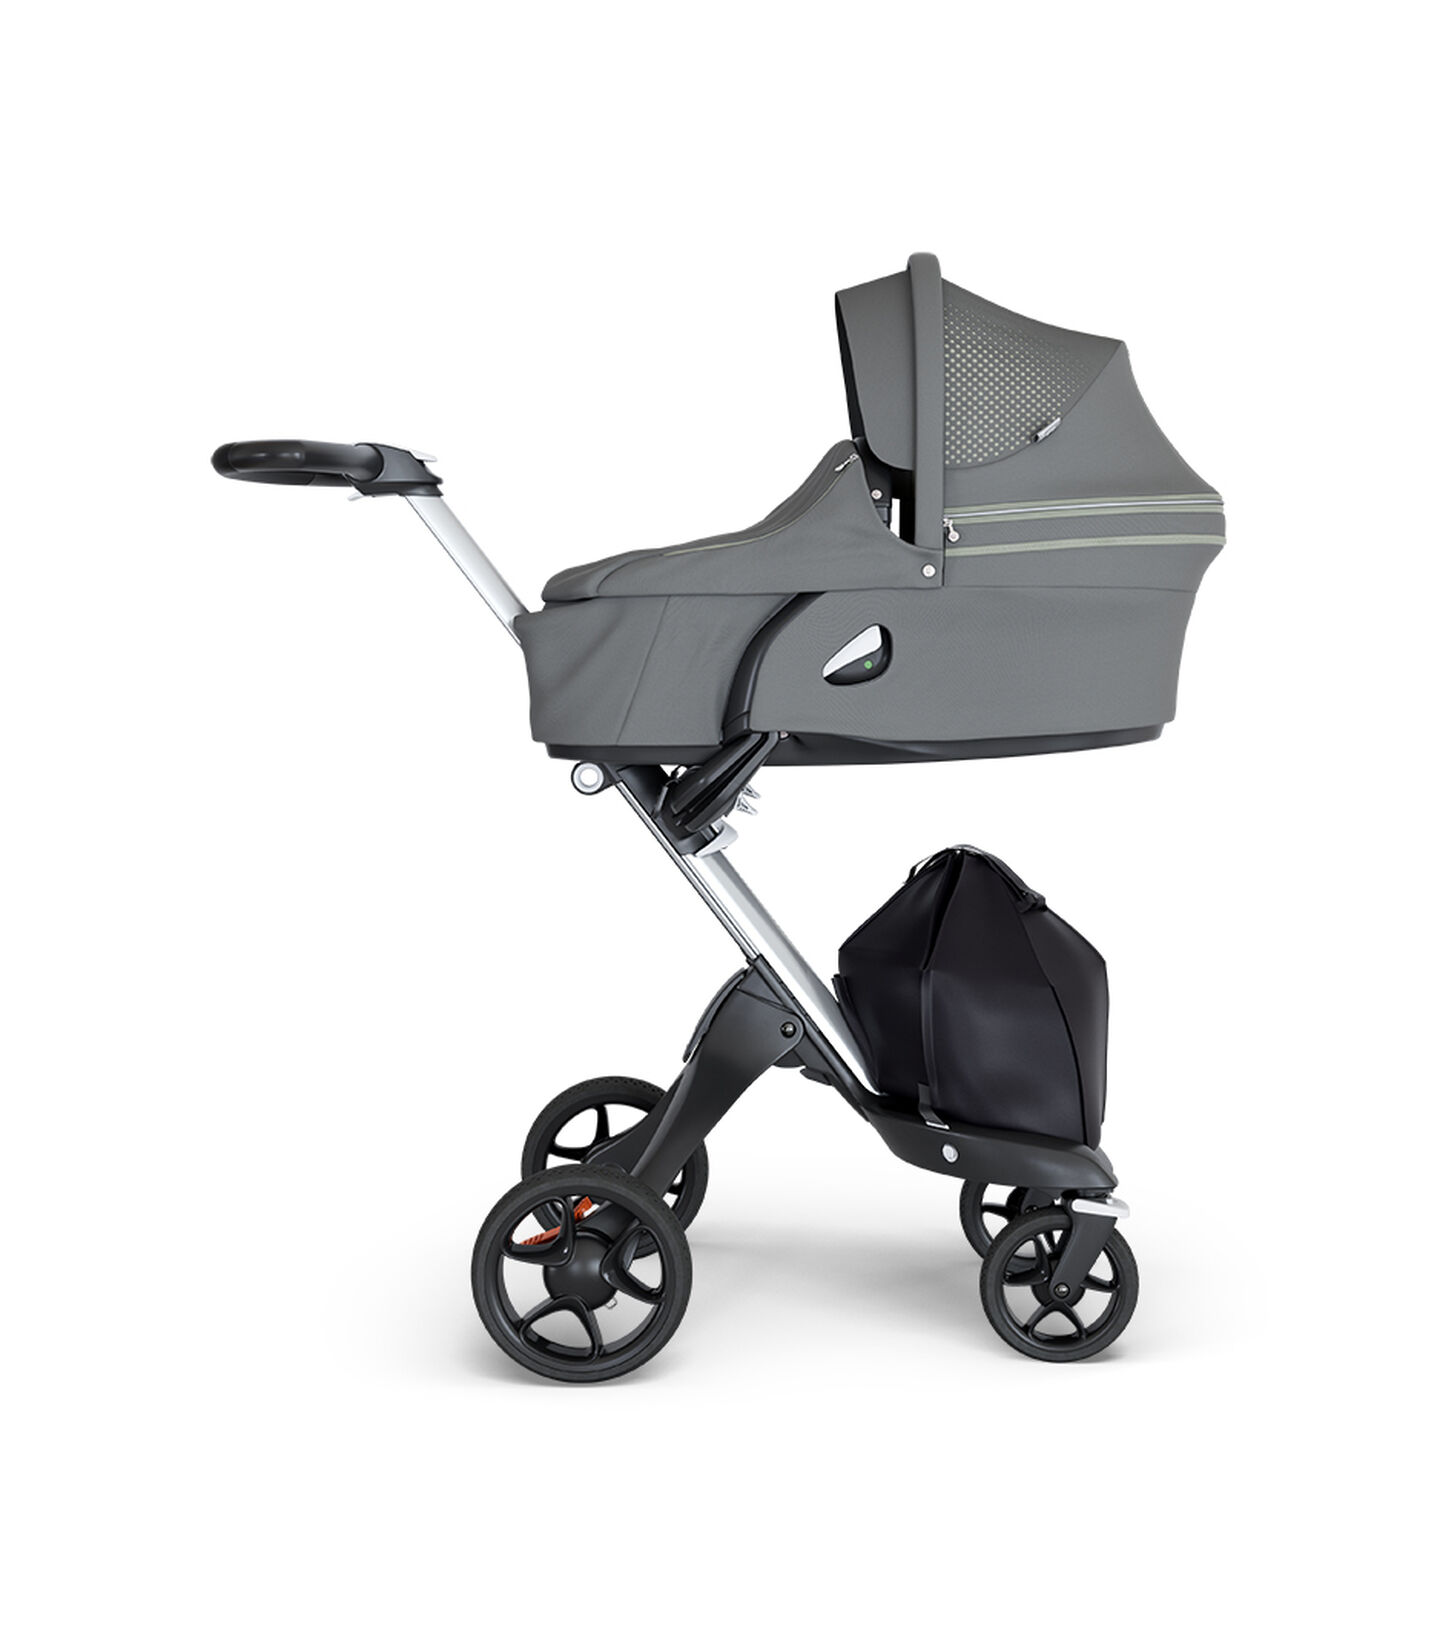 Stokke® Xplory® wtih Silver Chassis and Leatherette Black handle. Stokke® Stroller Carry Cot Athleisure Green.